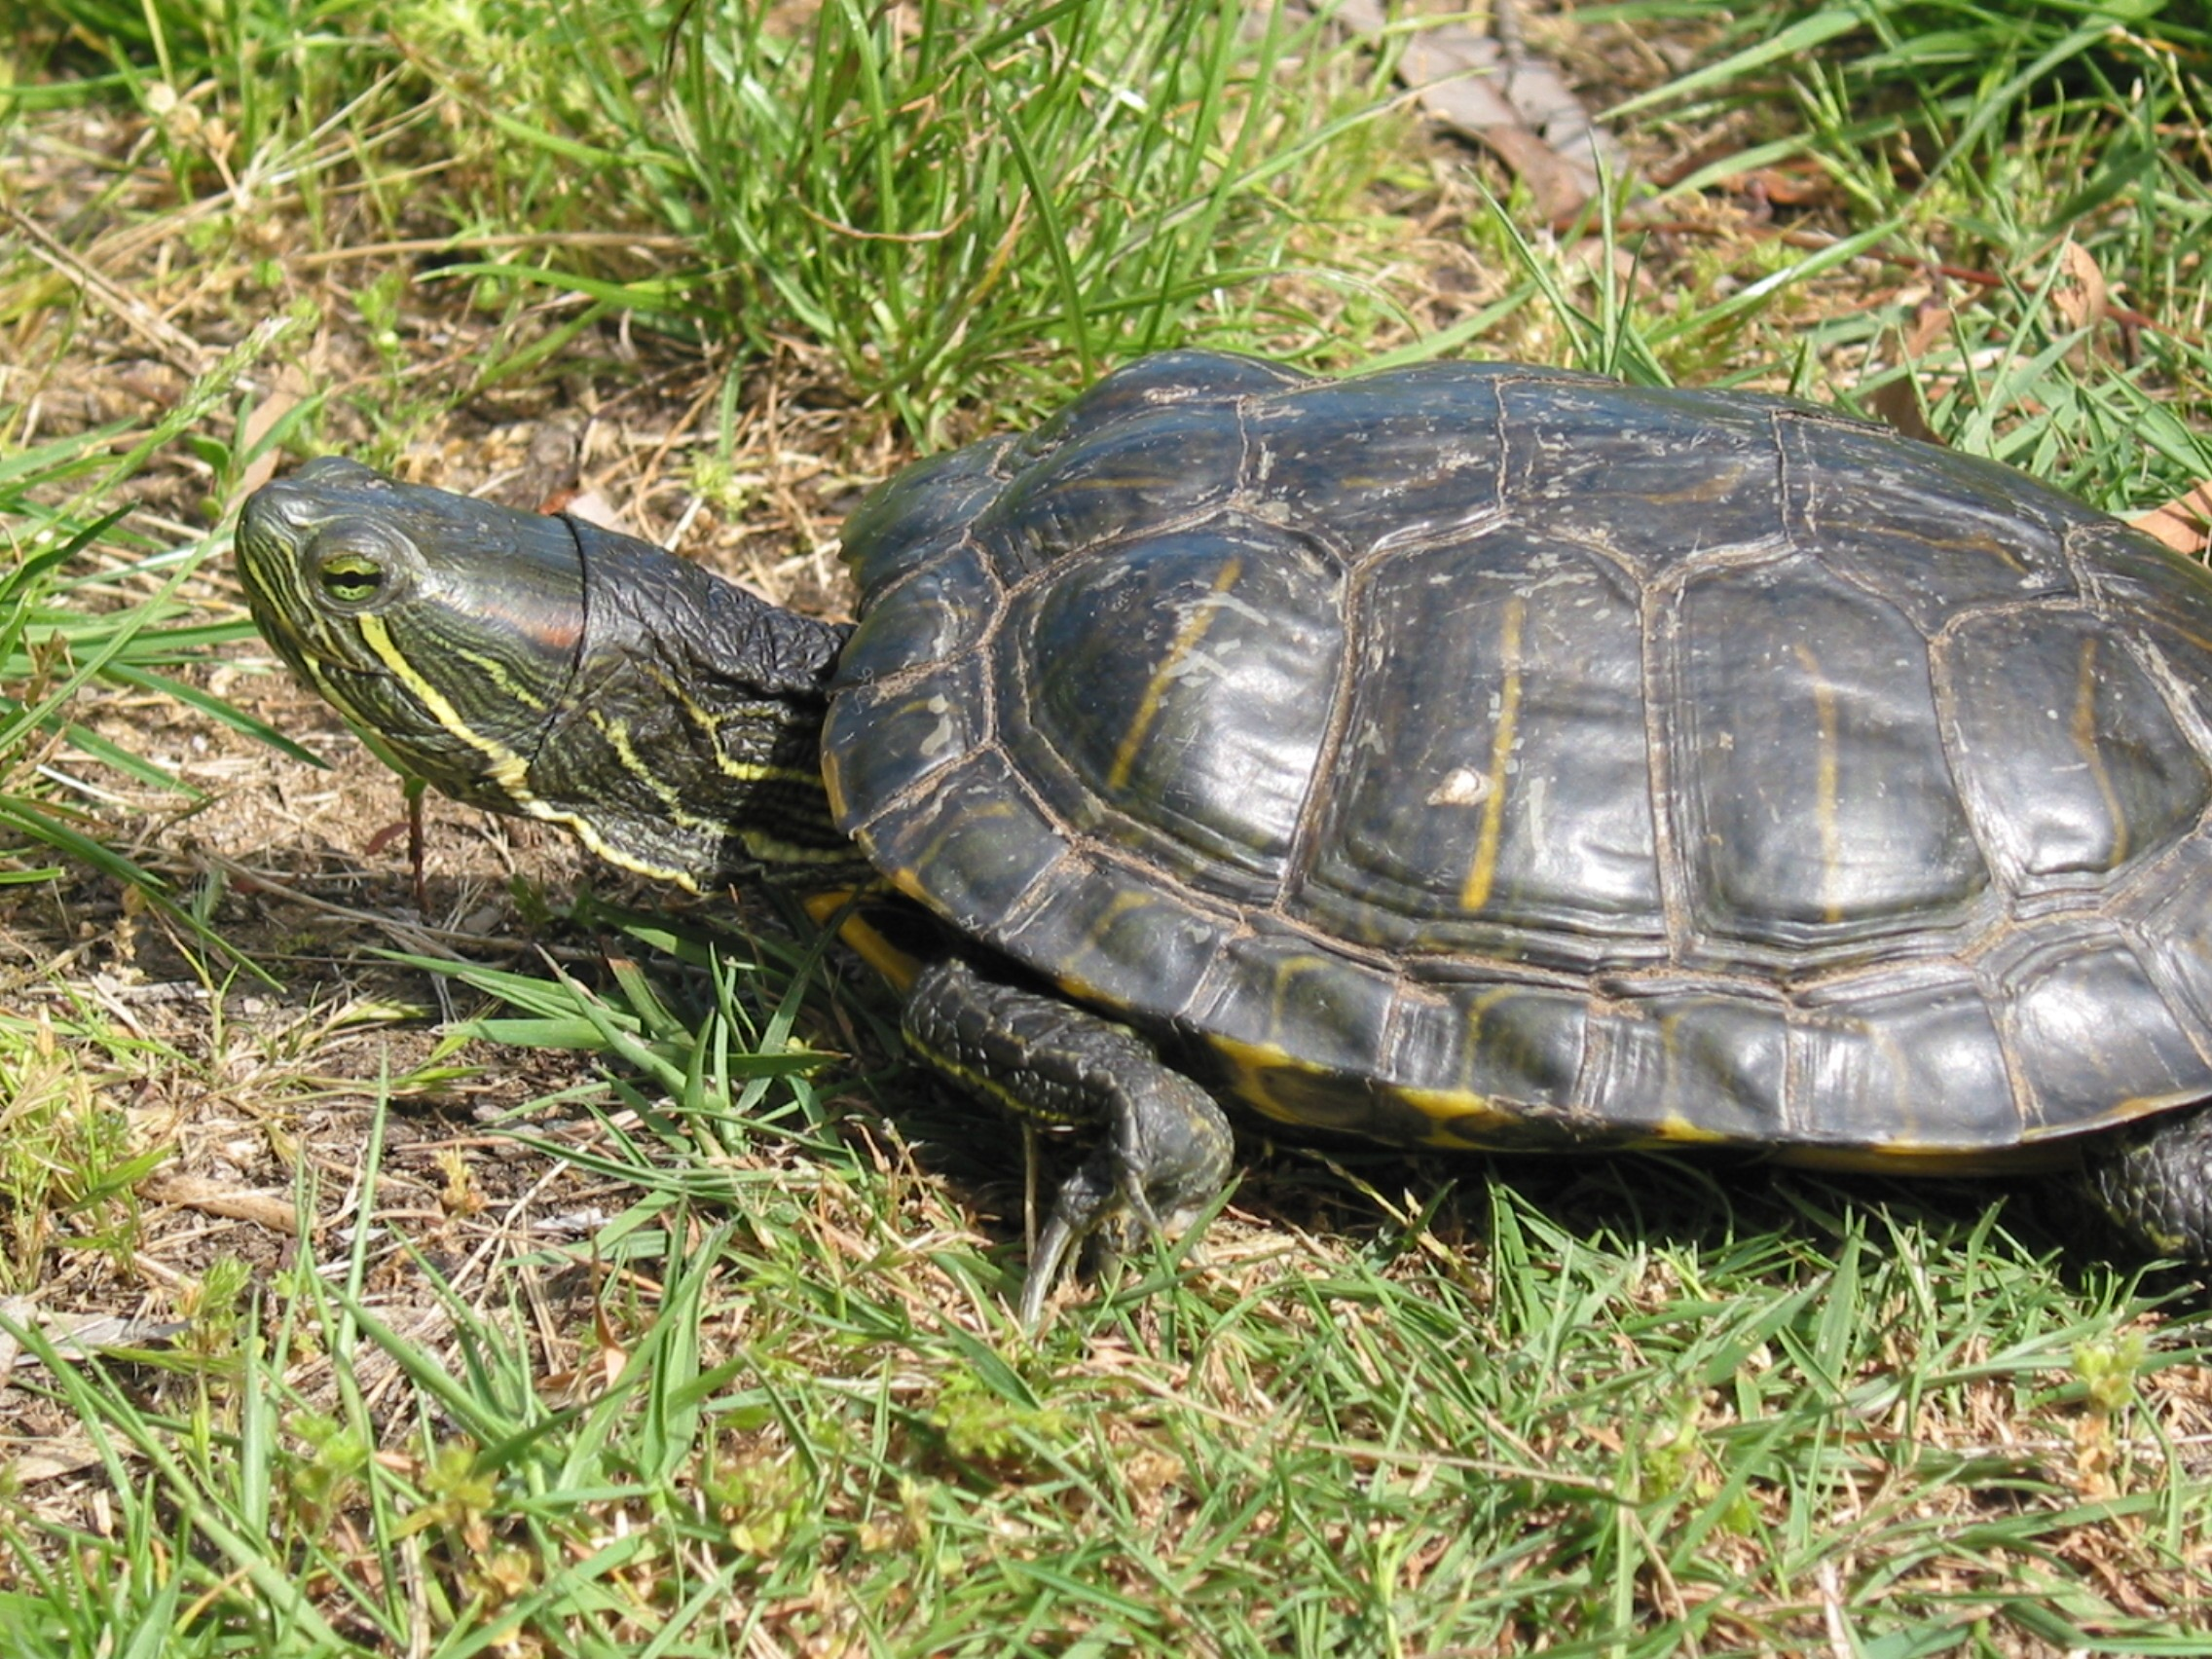 A Red Eared Slider Turtle